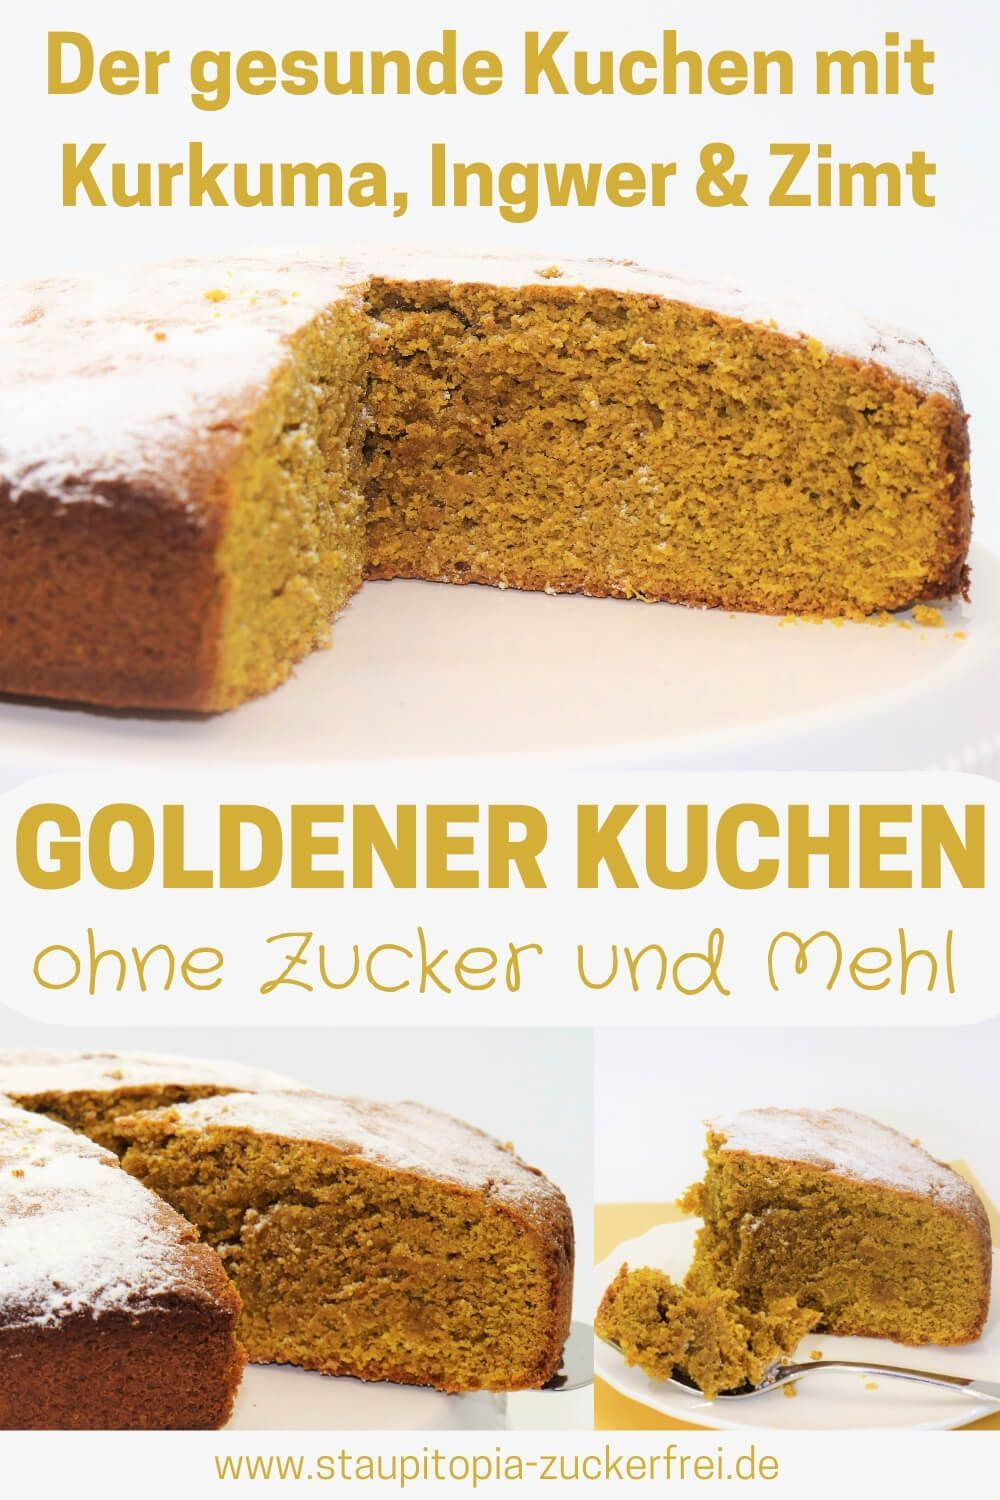 Healthy cake with turmeric? Here comes the golden cake! - Sugar free Staupitopia -  Healthy cake with turmeric? Here comes the golden cake! – Sugar free Staupitopia  - #Cake #comes #Free #golden #healthy #healthydessertseasy #healthydessertsinamug #healthydessertslowcarb #healthydessertsnosugar #healthydessertsrecipes #healthydessertsunder100calories #staupitopia #sugar #turmeric